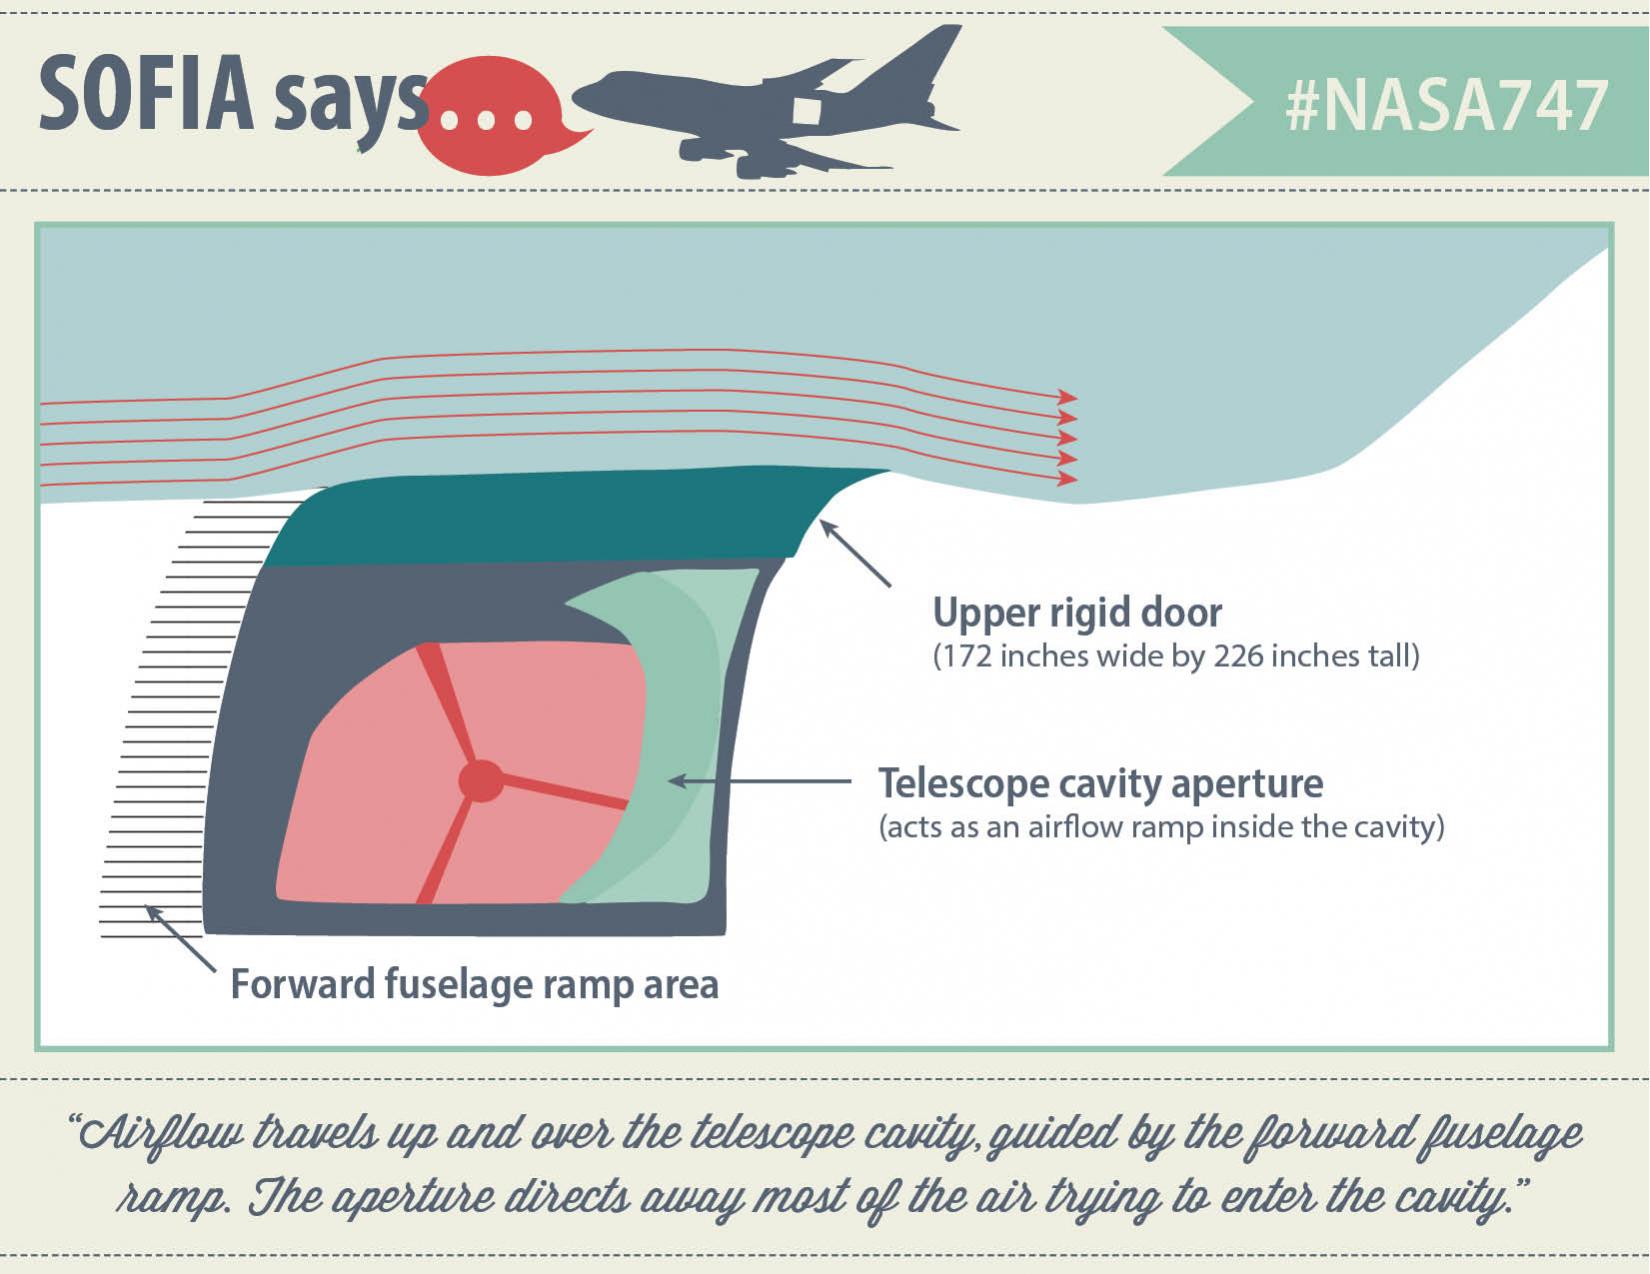 """SOFIA says """"Airflow travels up and over the telescope cavity, guided by the forward fuselage ramp. The aperture directs away most of the air trying to enter the cavity."""""""